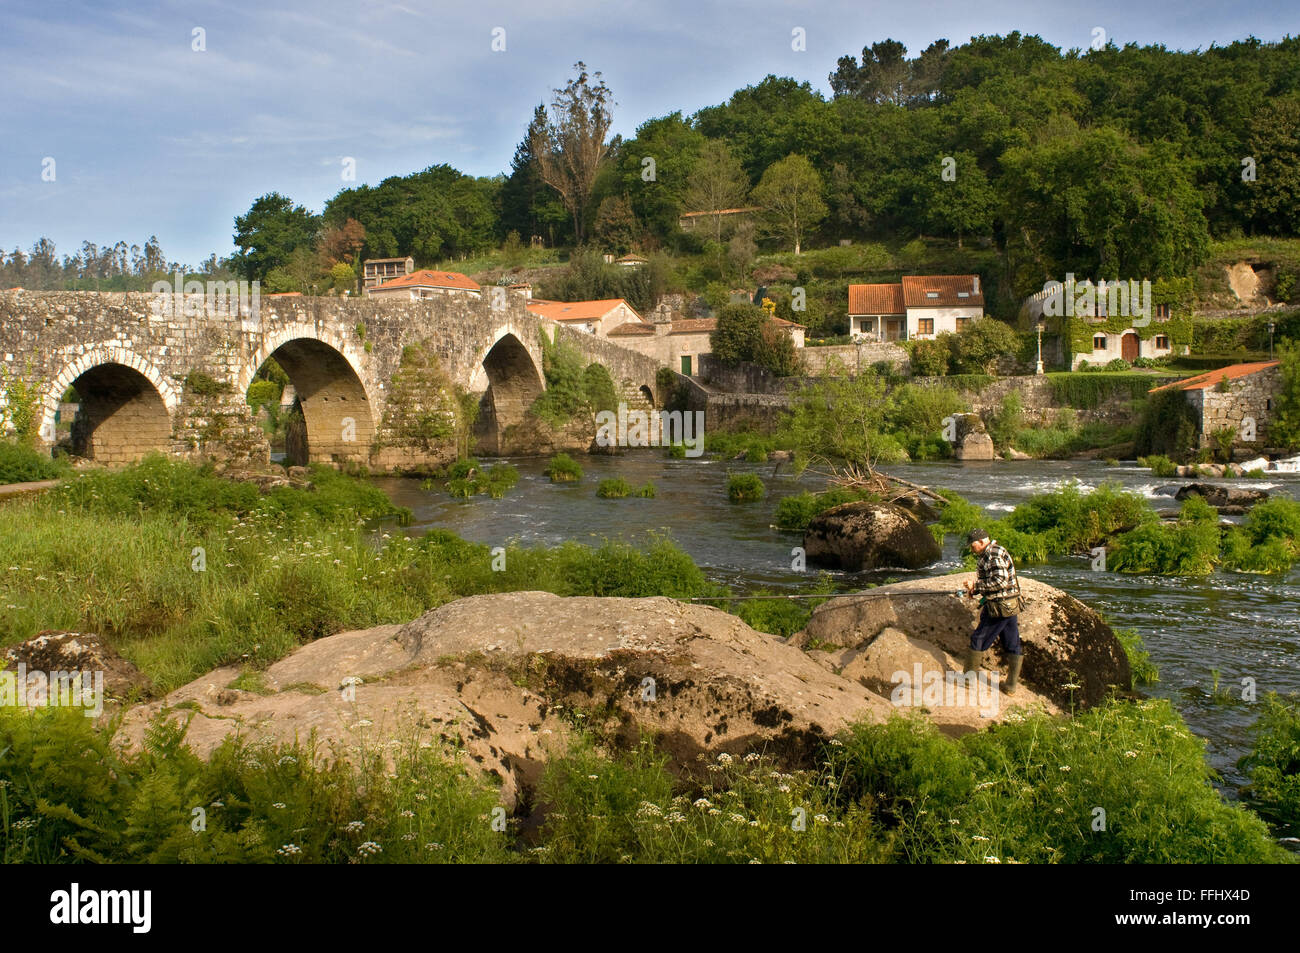 Way of St. James, Jacobean Route. Ponte Maceira, River Tambre, the most significant bridge all the way. It is a - Stock Image